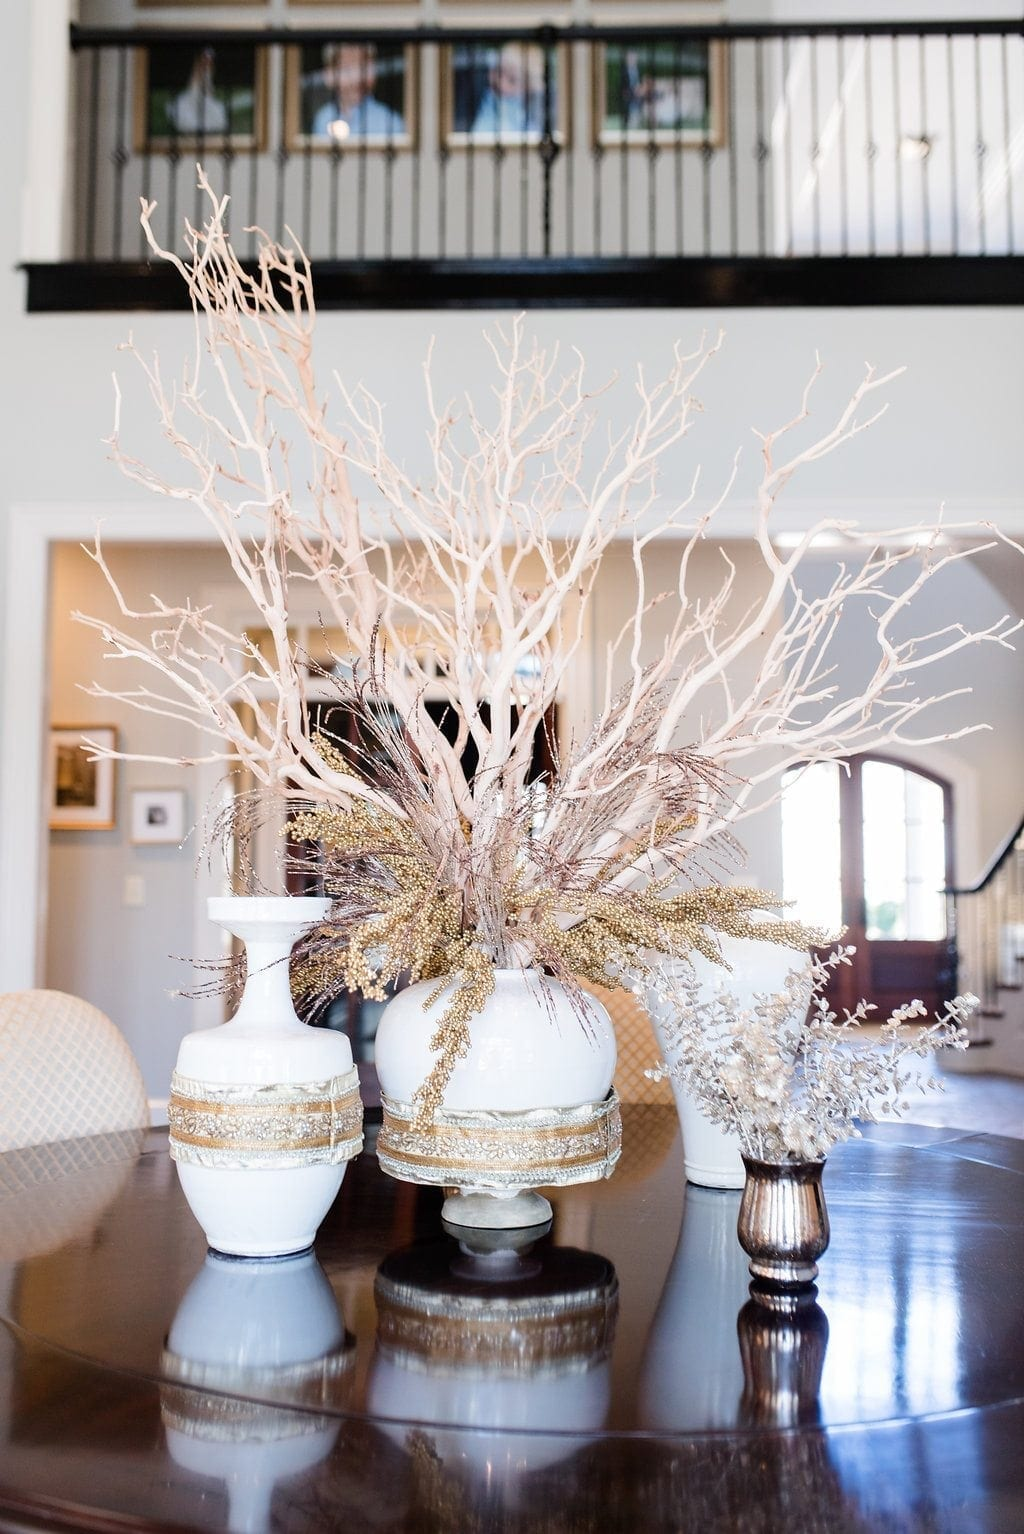 Manzanita Branches used as dining room centerpiece for round dining room table. White urns filled with branches and gold ribbon detail wrapped around urns.